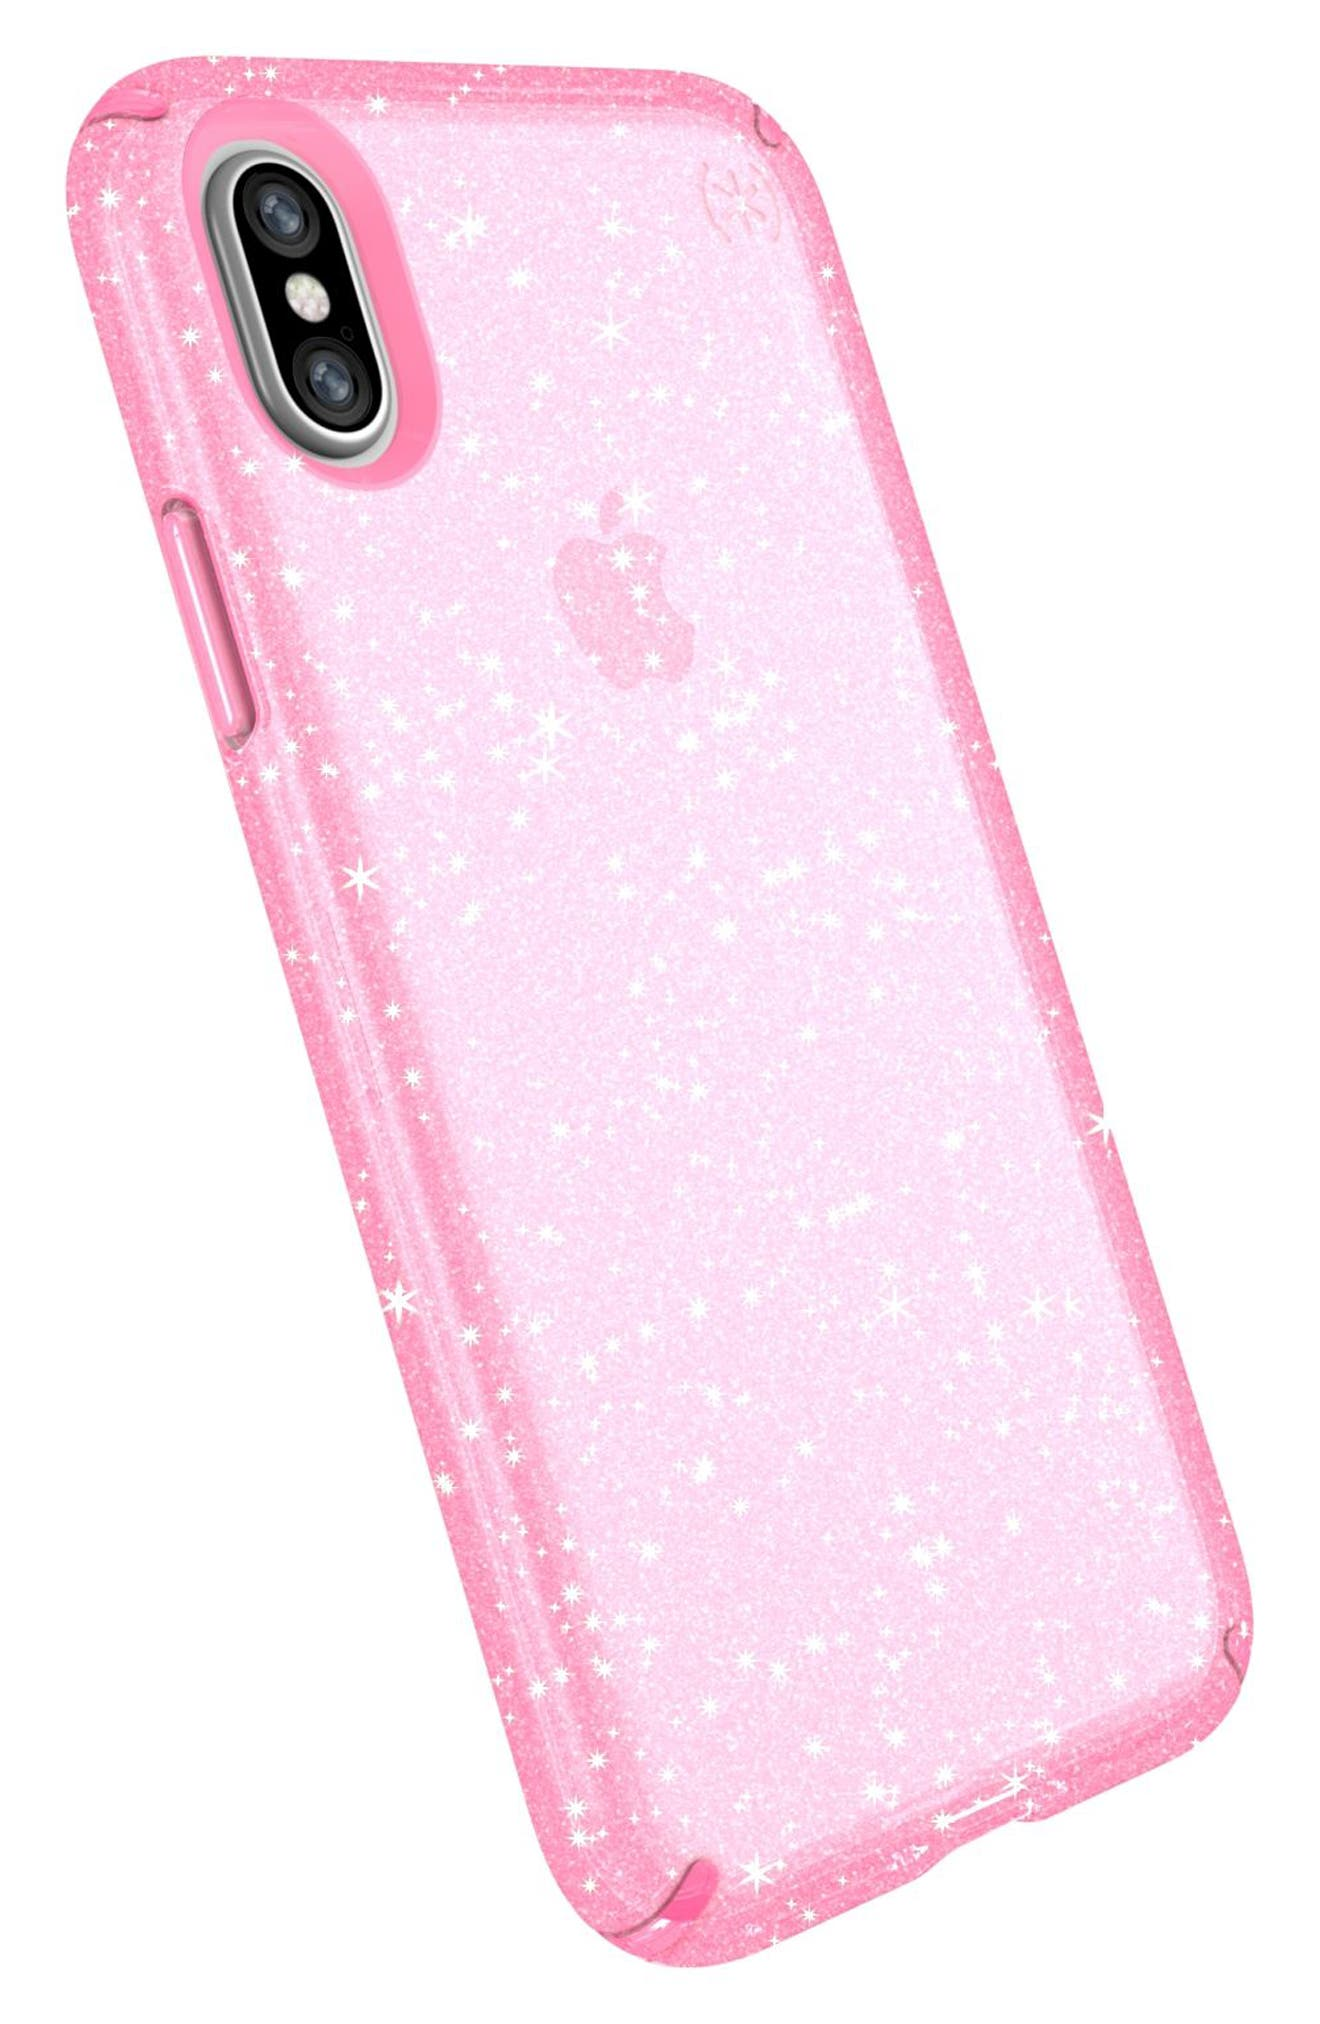 Transparent iPhone X & Xs Case,                             Alternate thumbnail 8, color,                             BELLA PINK GOLD GLITTER/ PINK